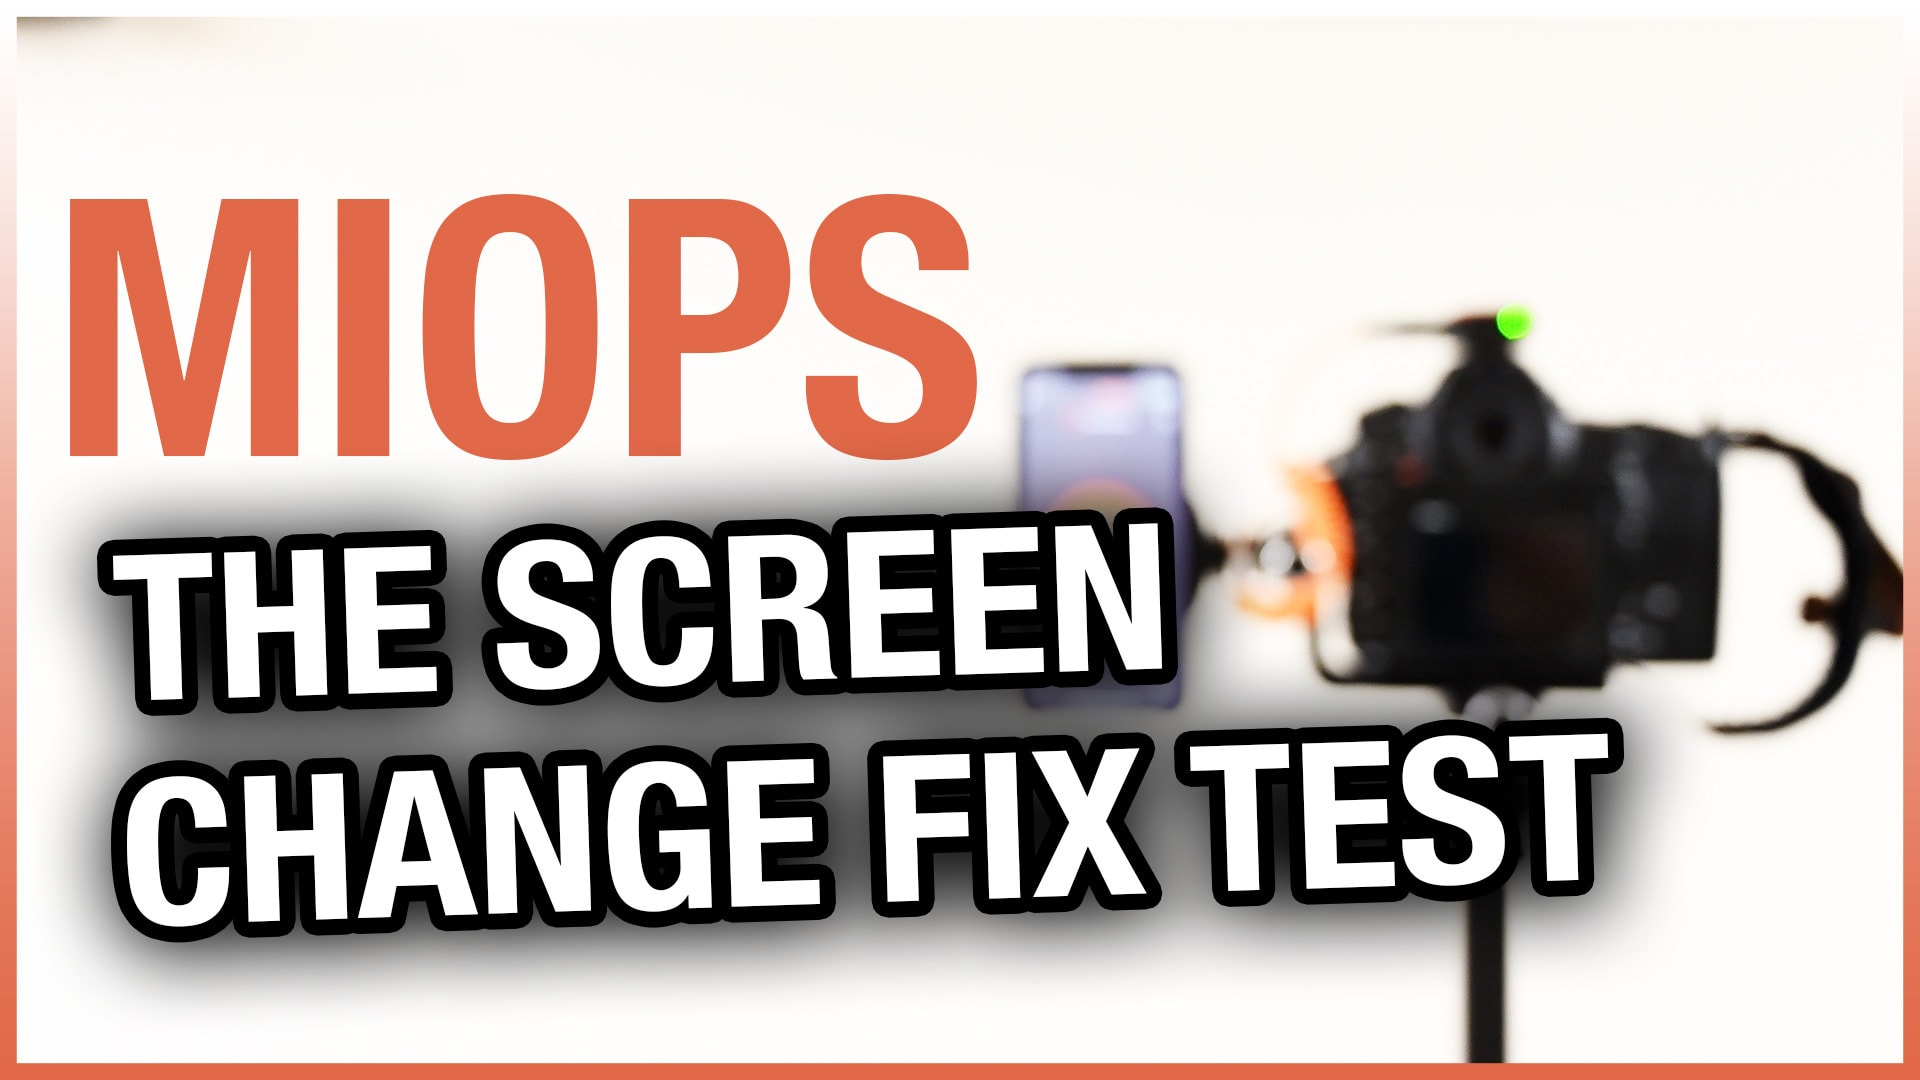 MIOPS Mobile App Screen Changing Fix Test